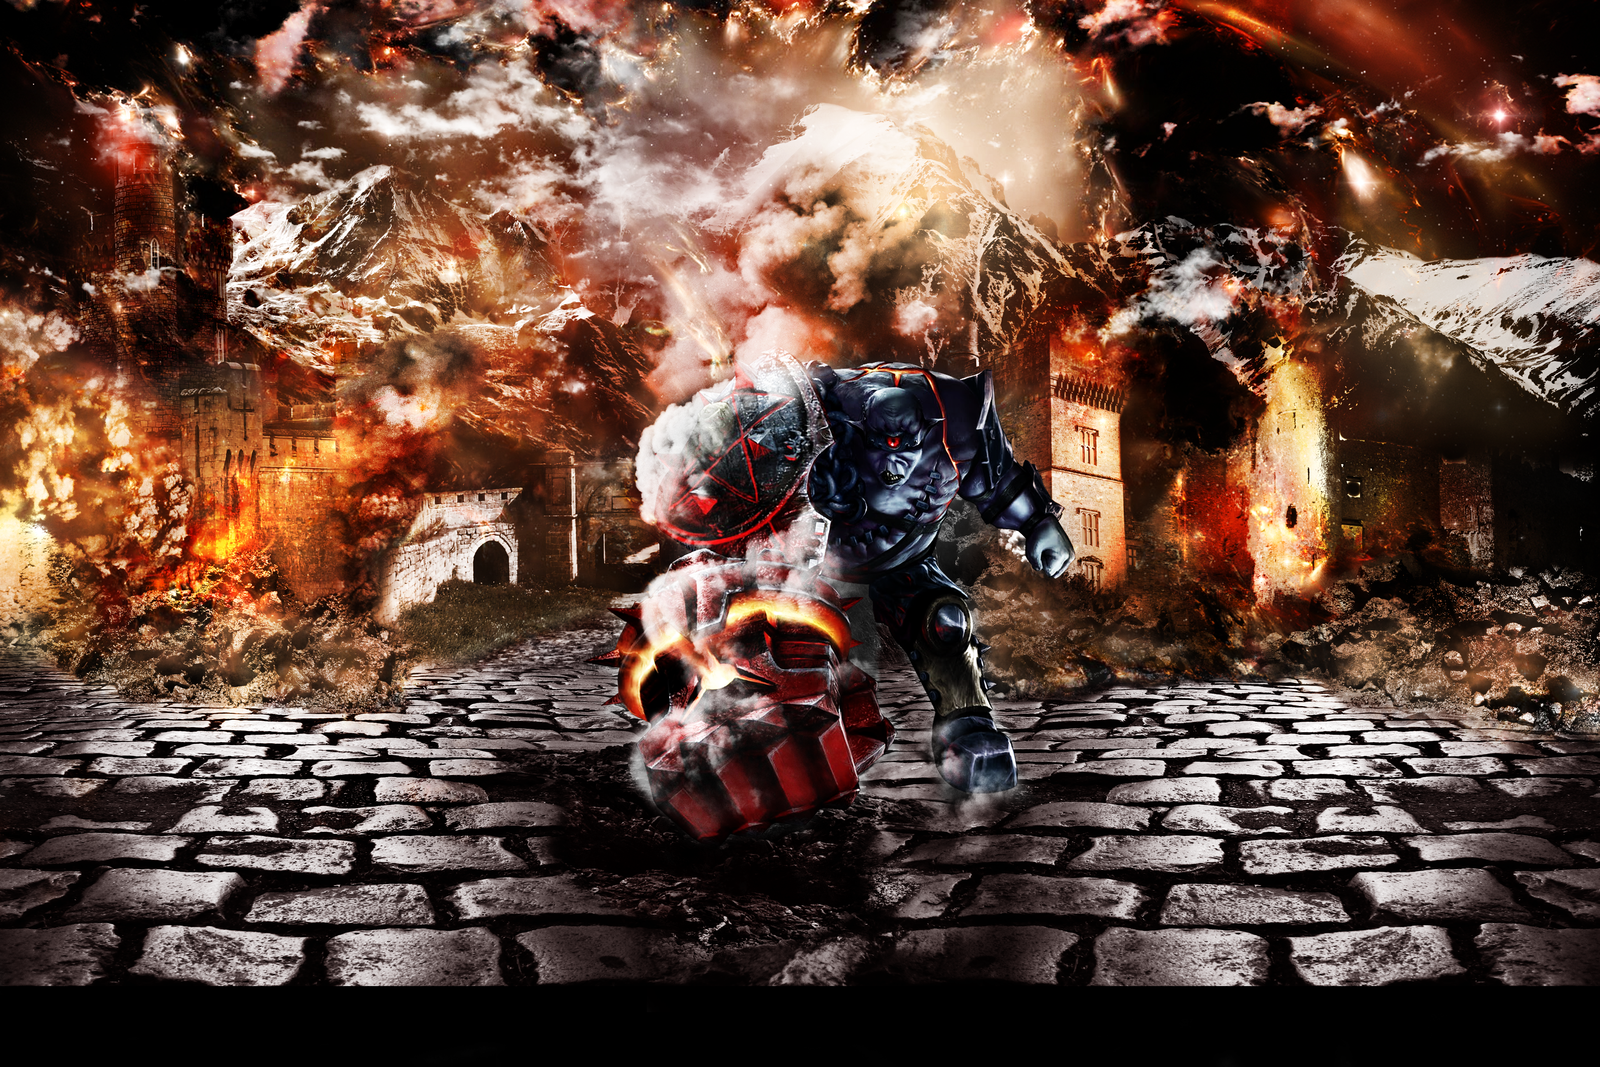 http://4.bp.blogspot.com/-5jEMf2zV7Is/TkqgTnpJ_4I/AAAAAAAAAQ0/cPE_XO51ems/s1600/Heroes_of_Newerth_Mousepad_by_LawlProductions.png